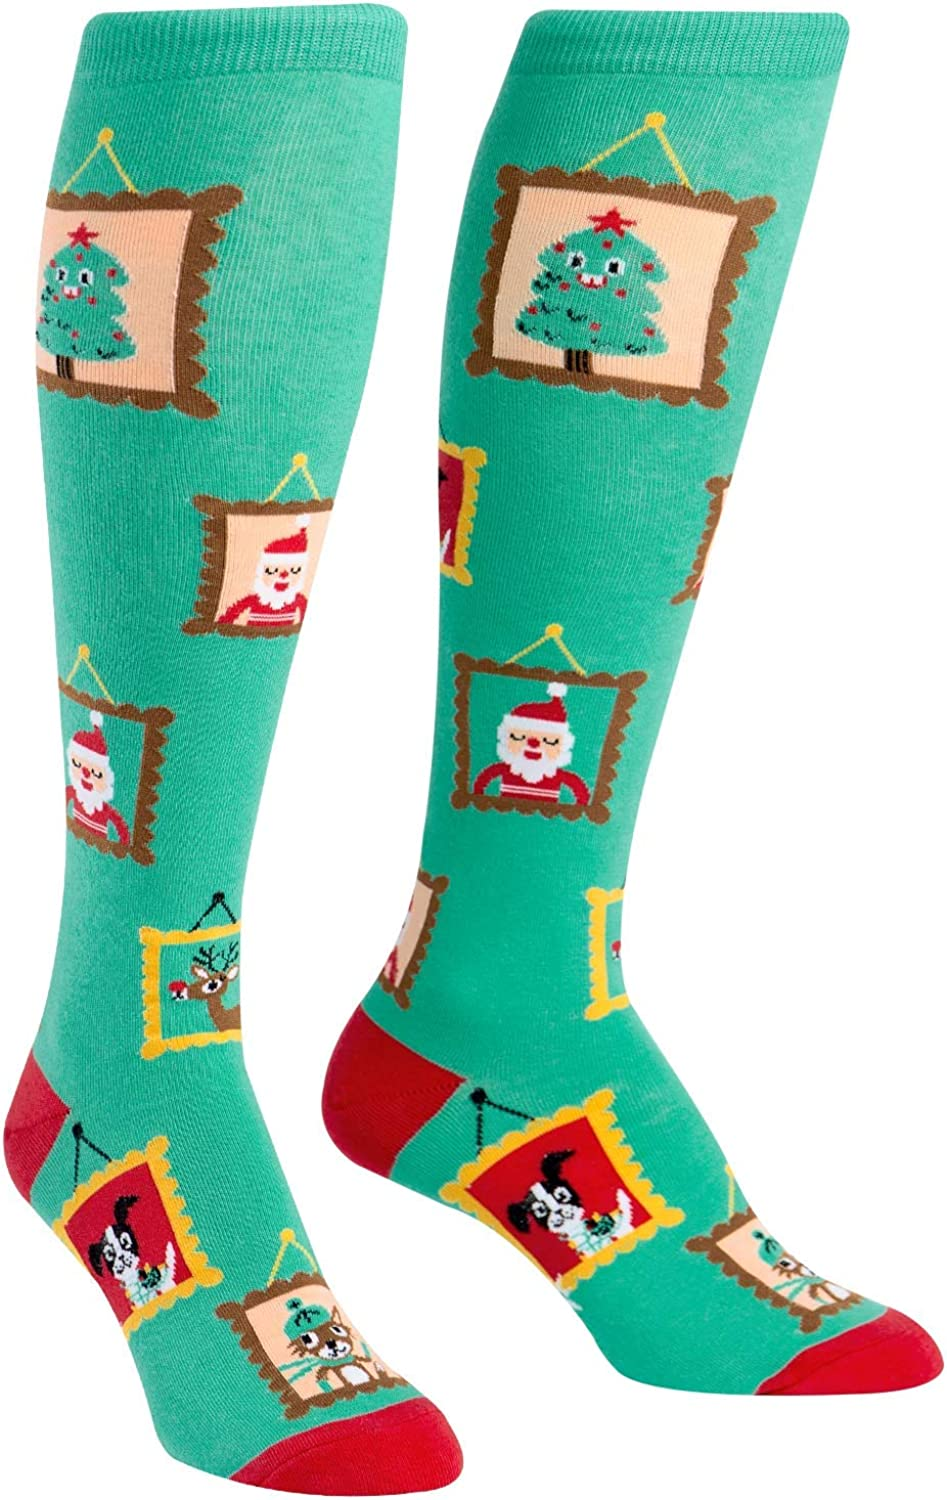 SOCK IT TO ME KNEE HIGH SOCKS TACKY HOLIDAY SWEATER